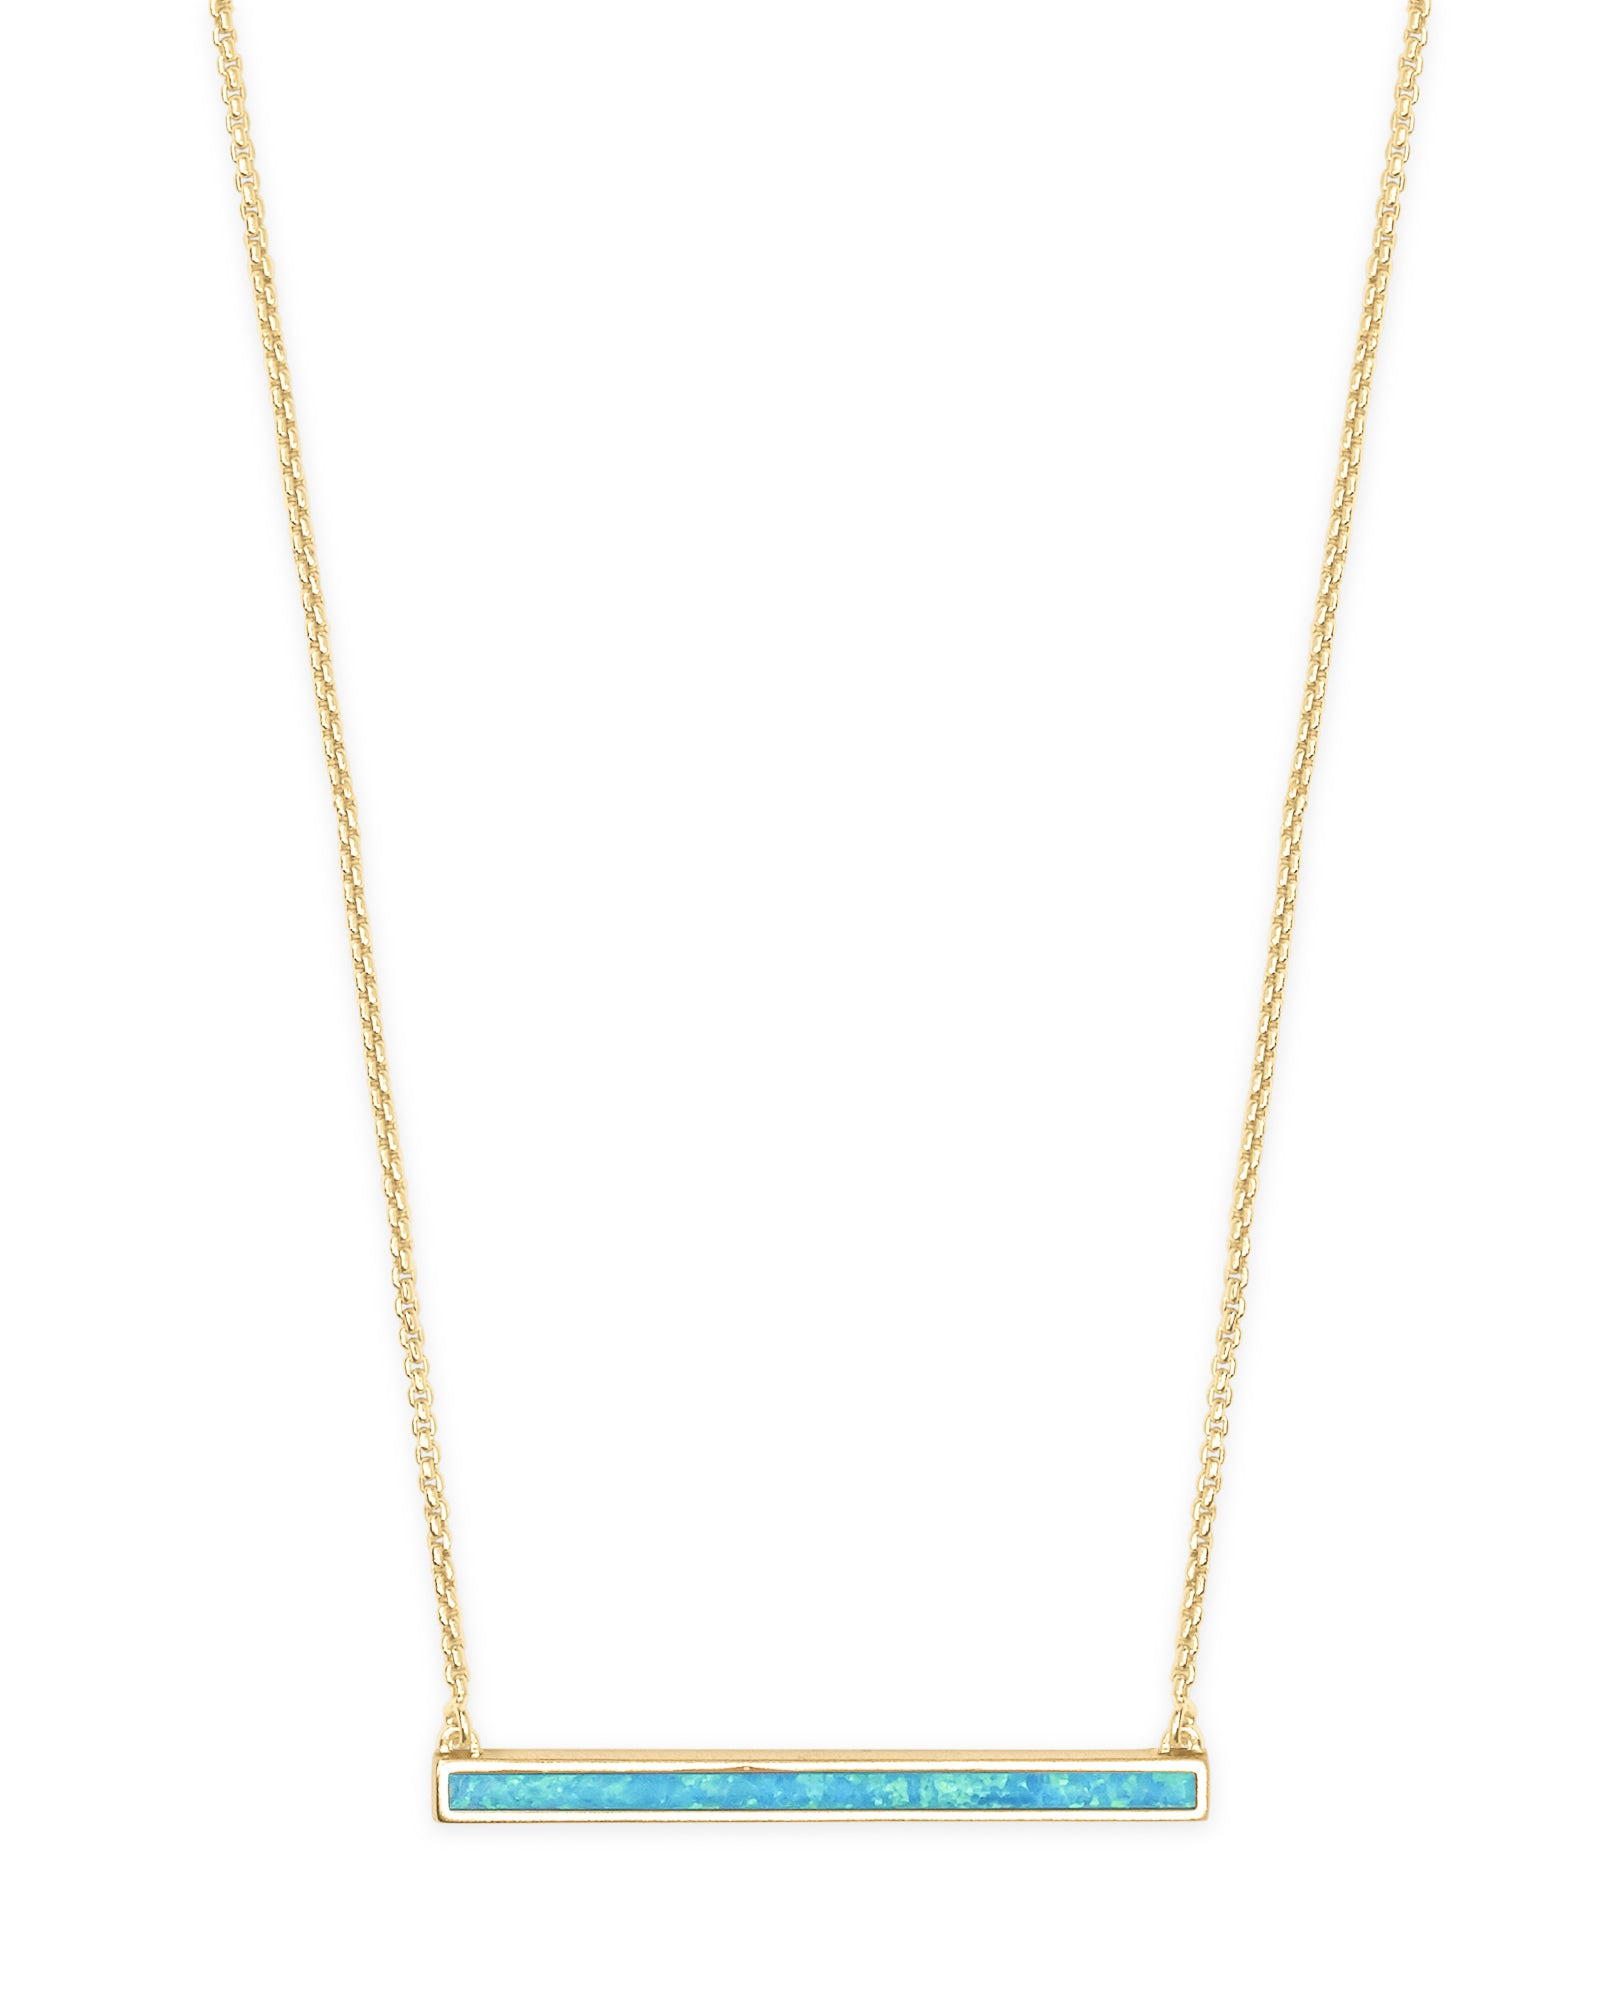 Kelsey Gold Pendant Necklace in Turquoise Kyocera Opal